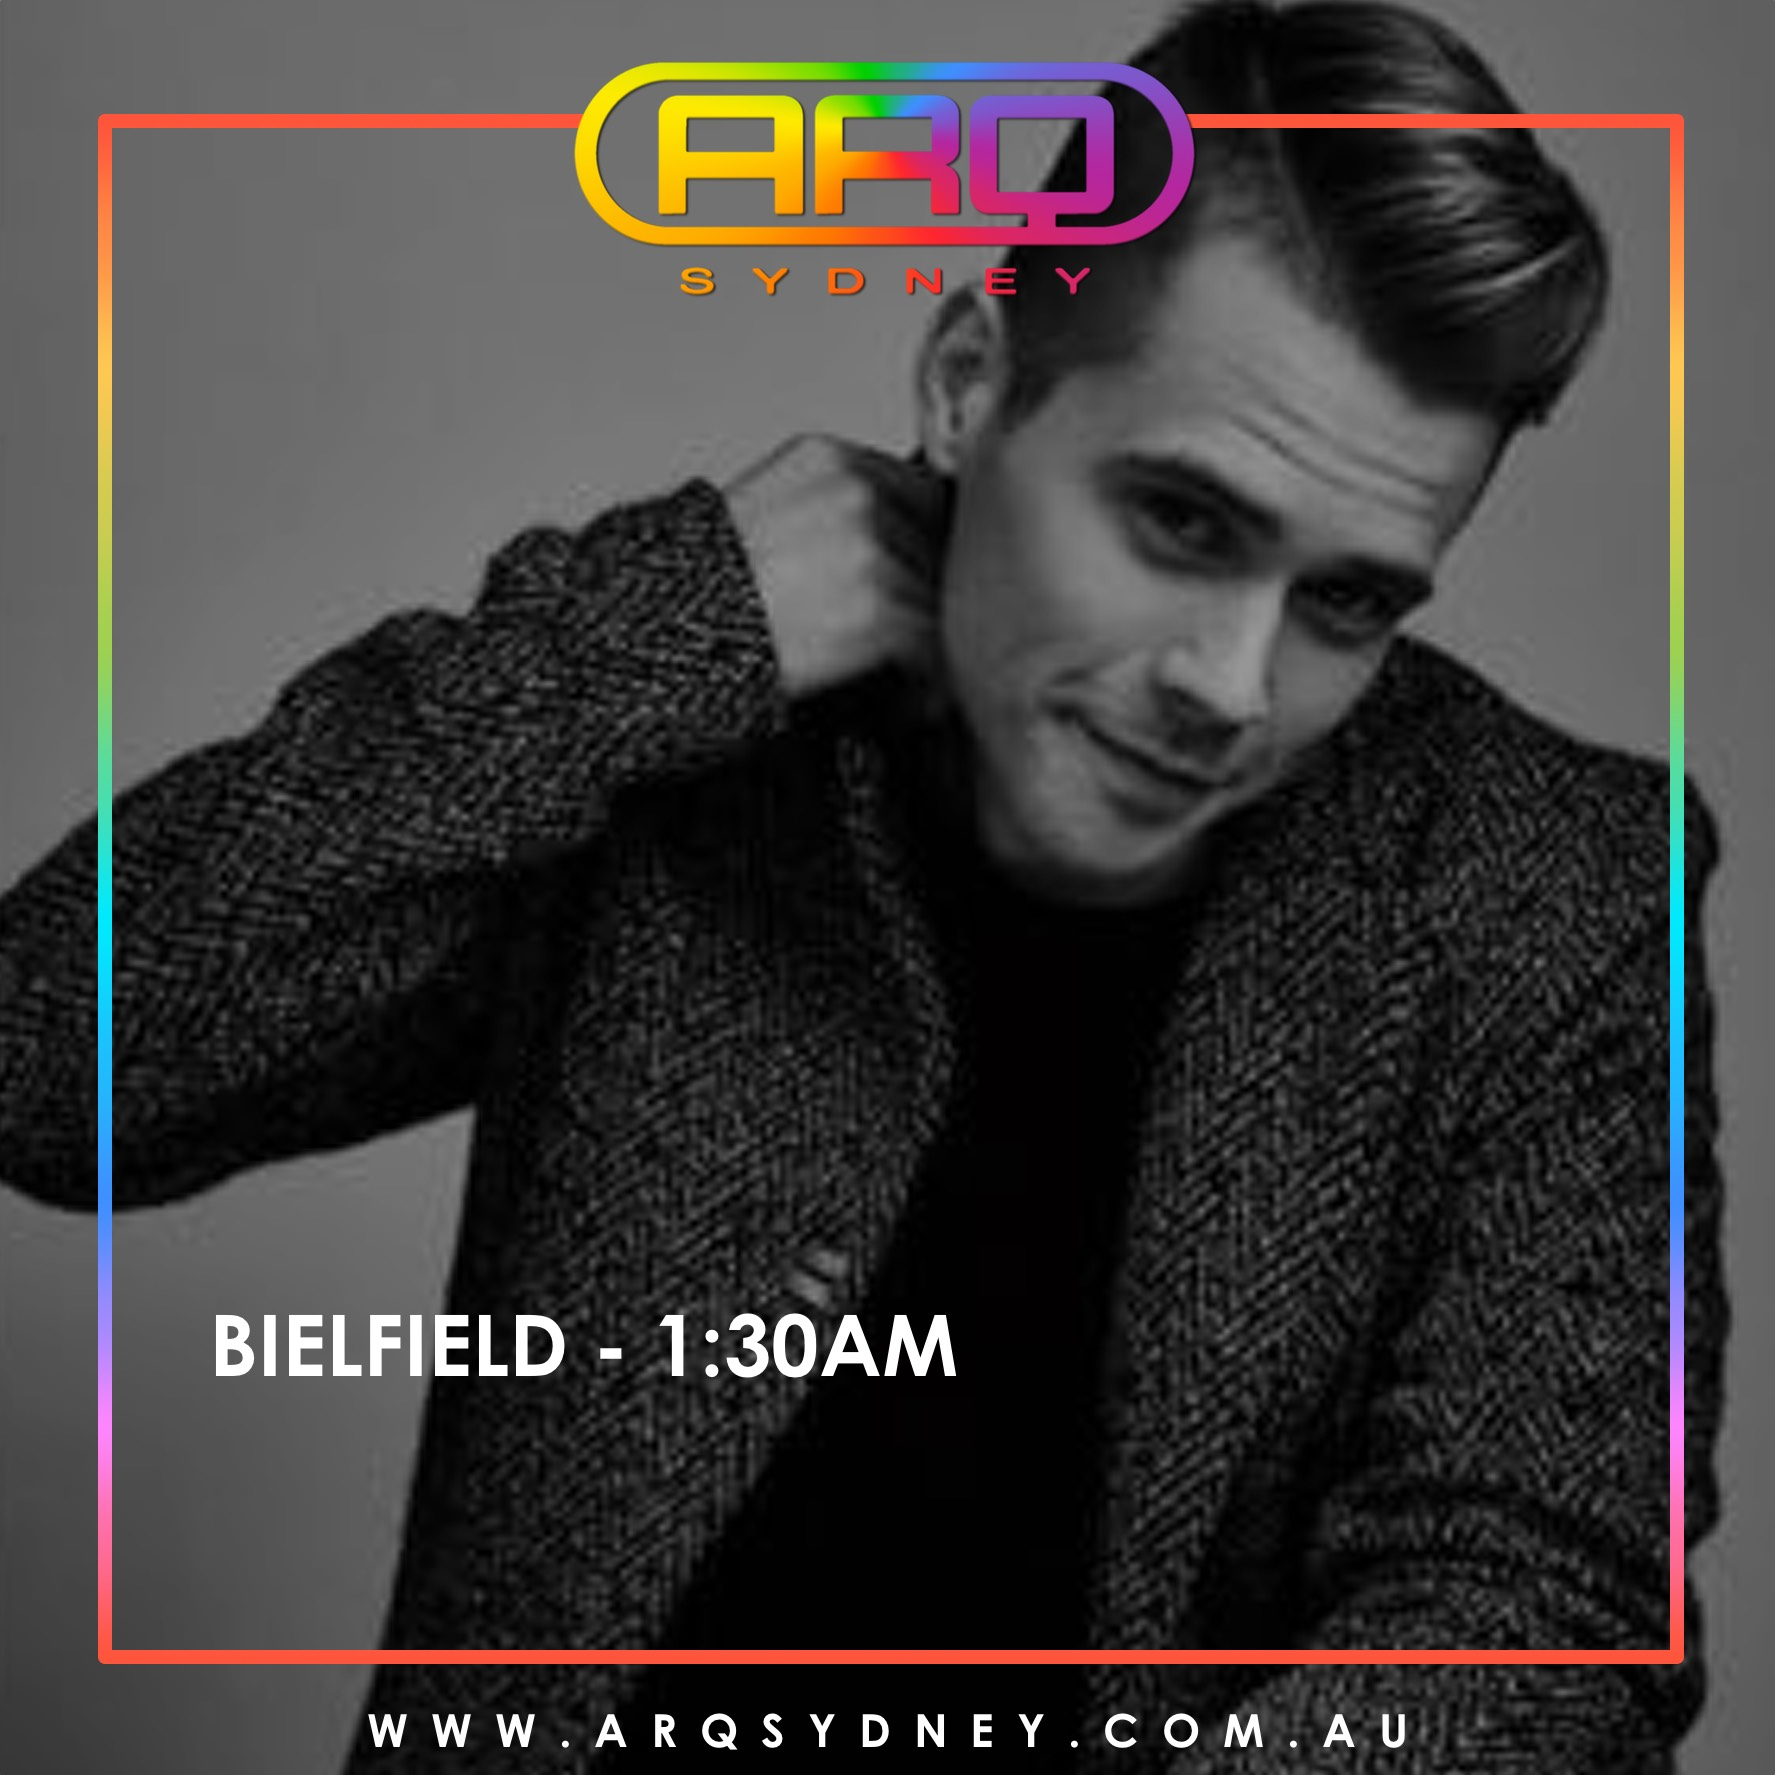 BIELFIELD - Live in The Arena - Sunday Mar 6th